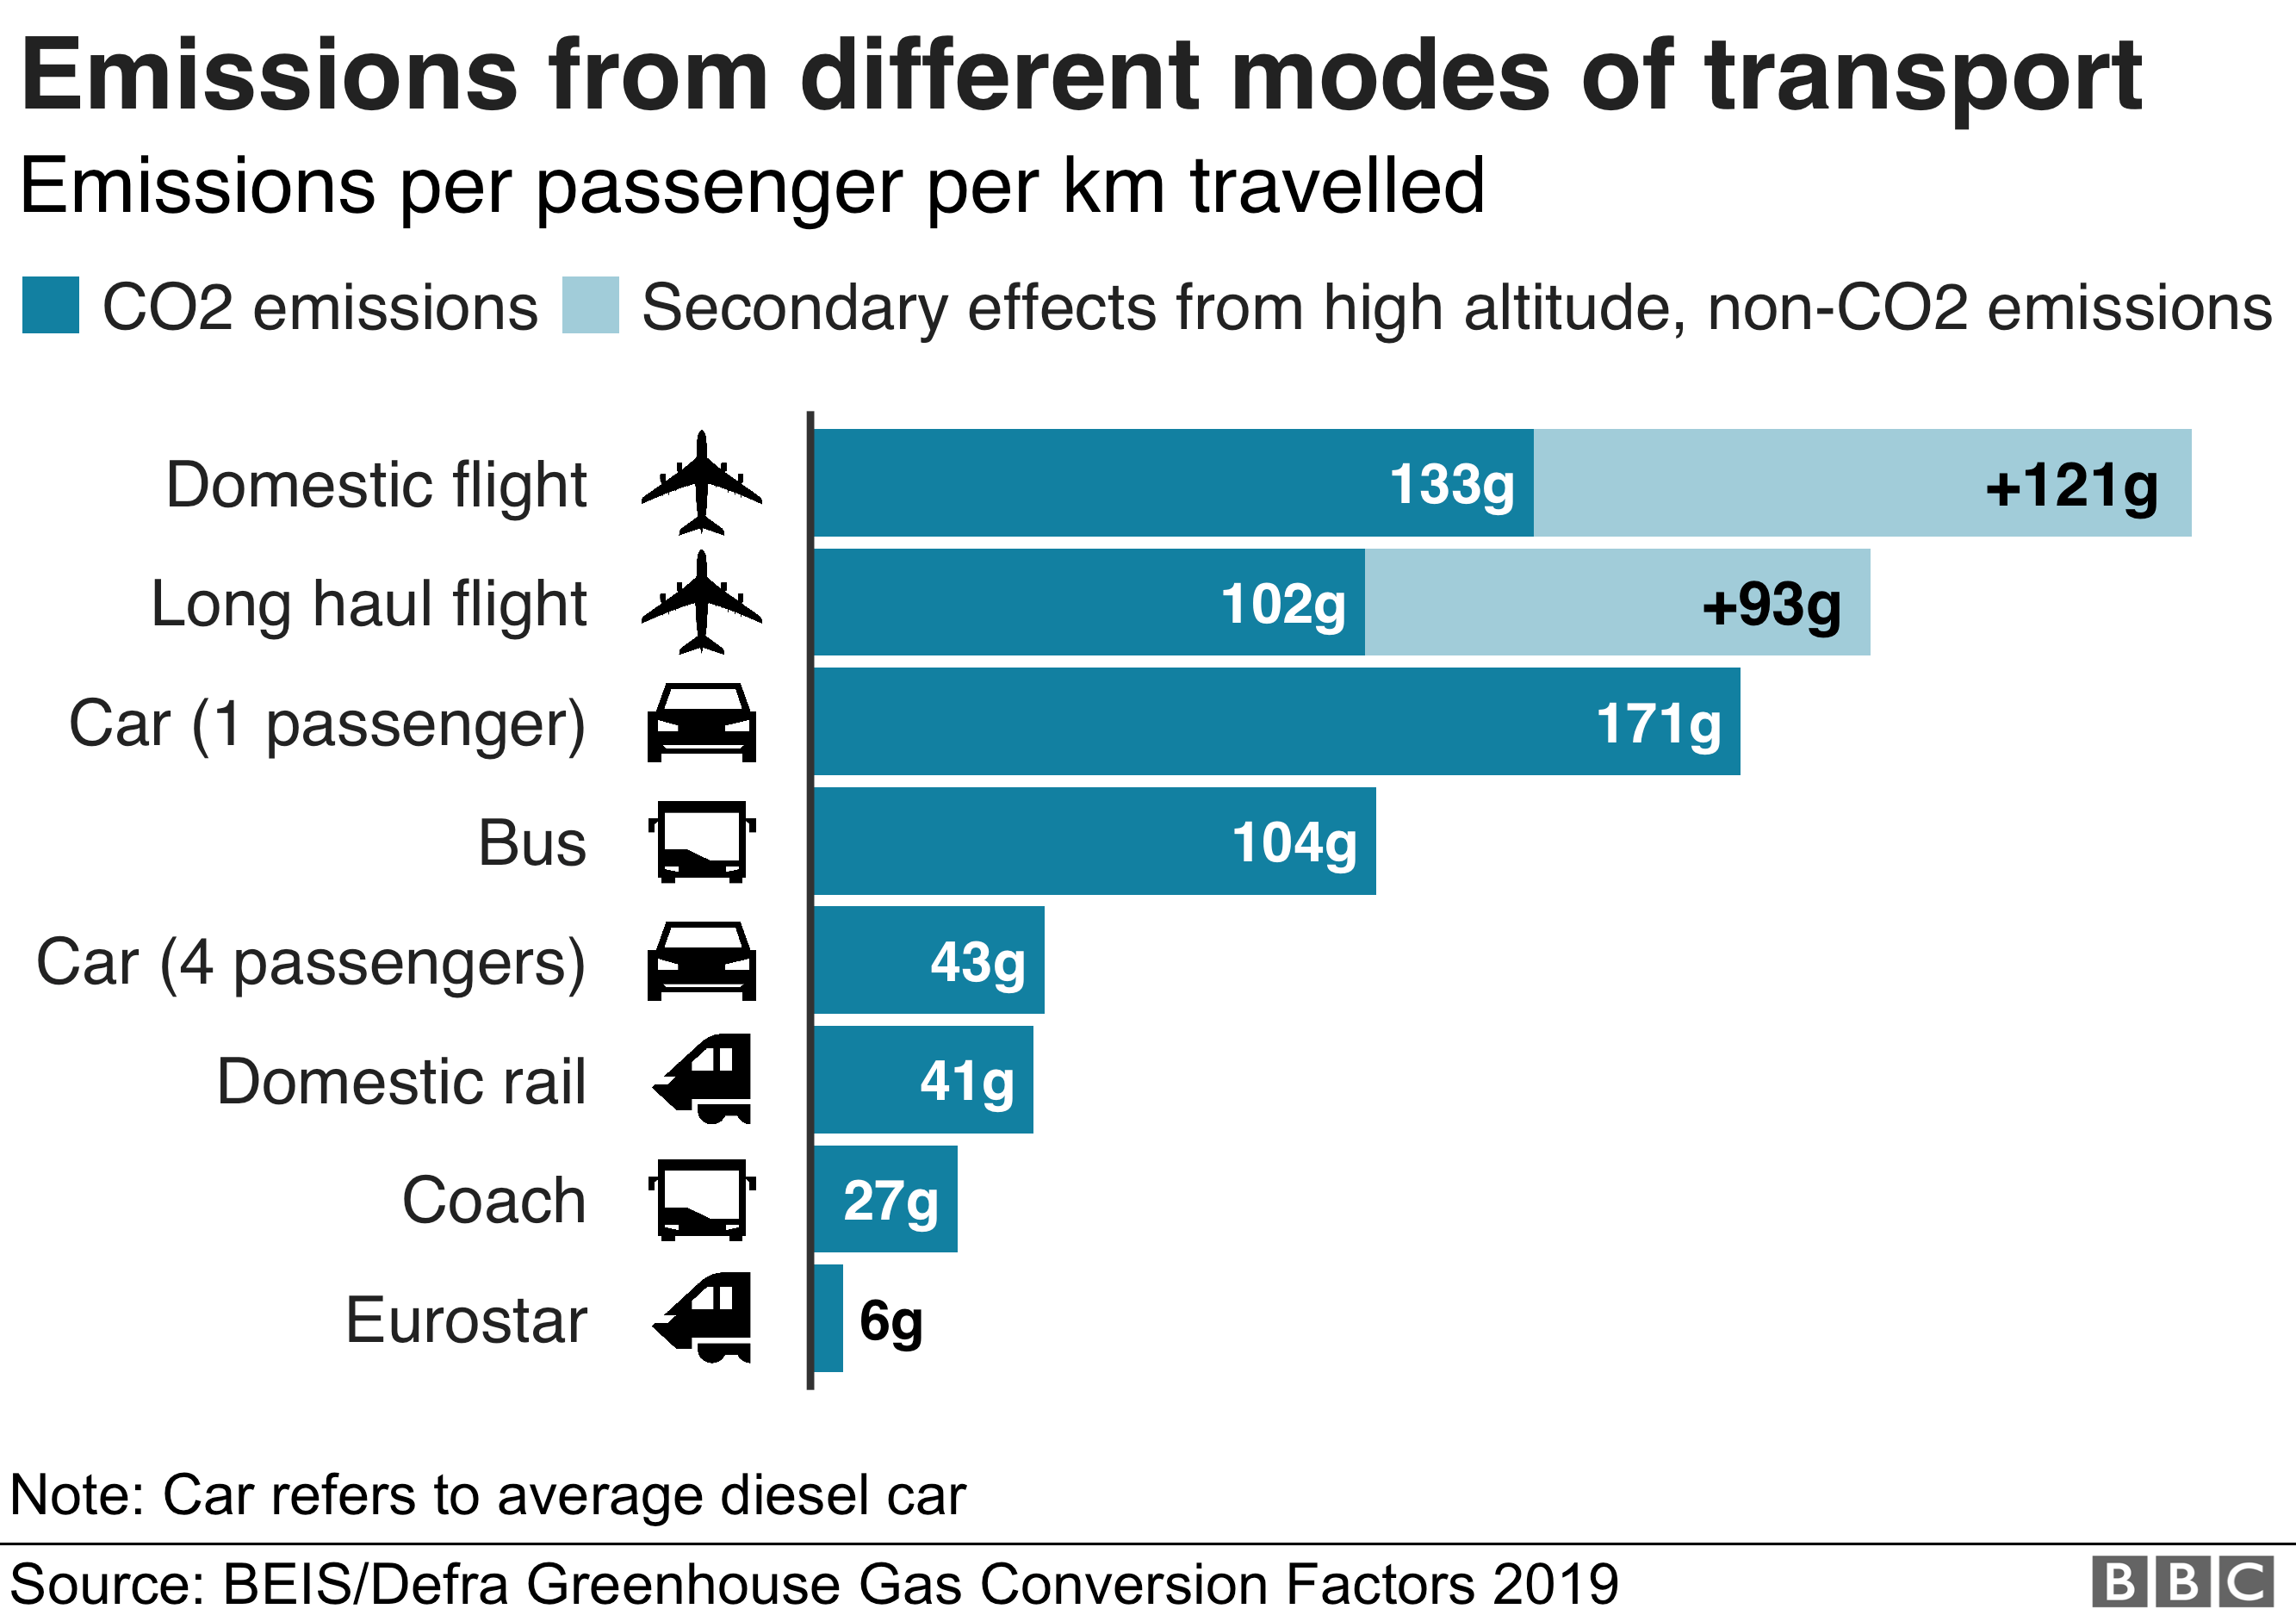 Chart showing emissions from different modes of transport